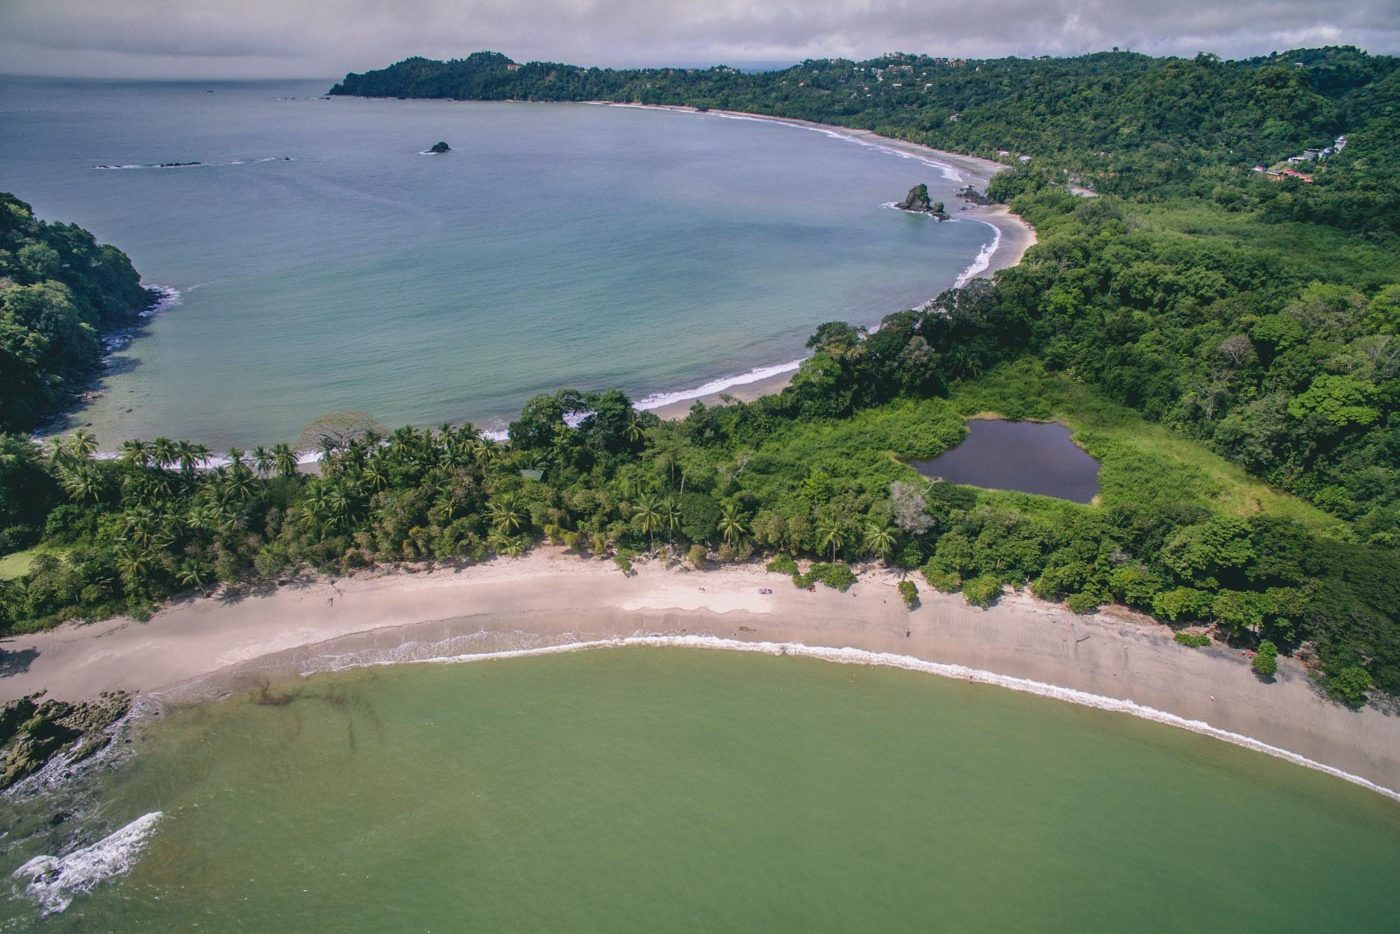 Manuel Antonio National Park from the air